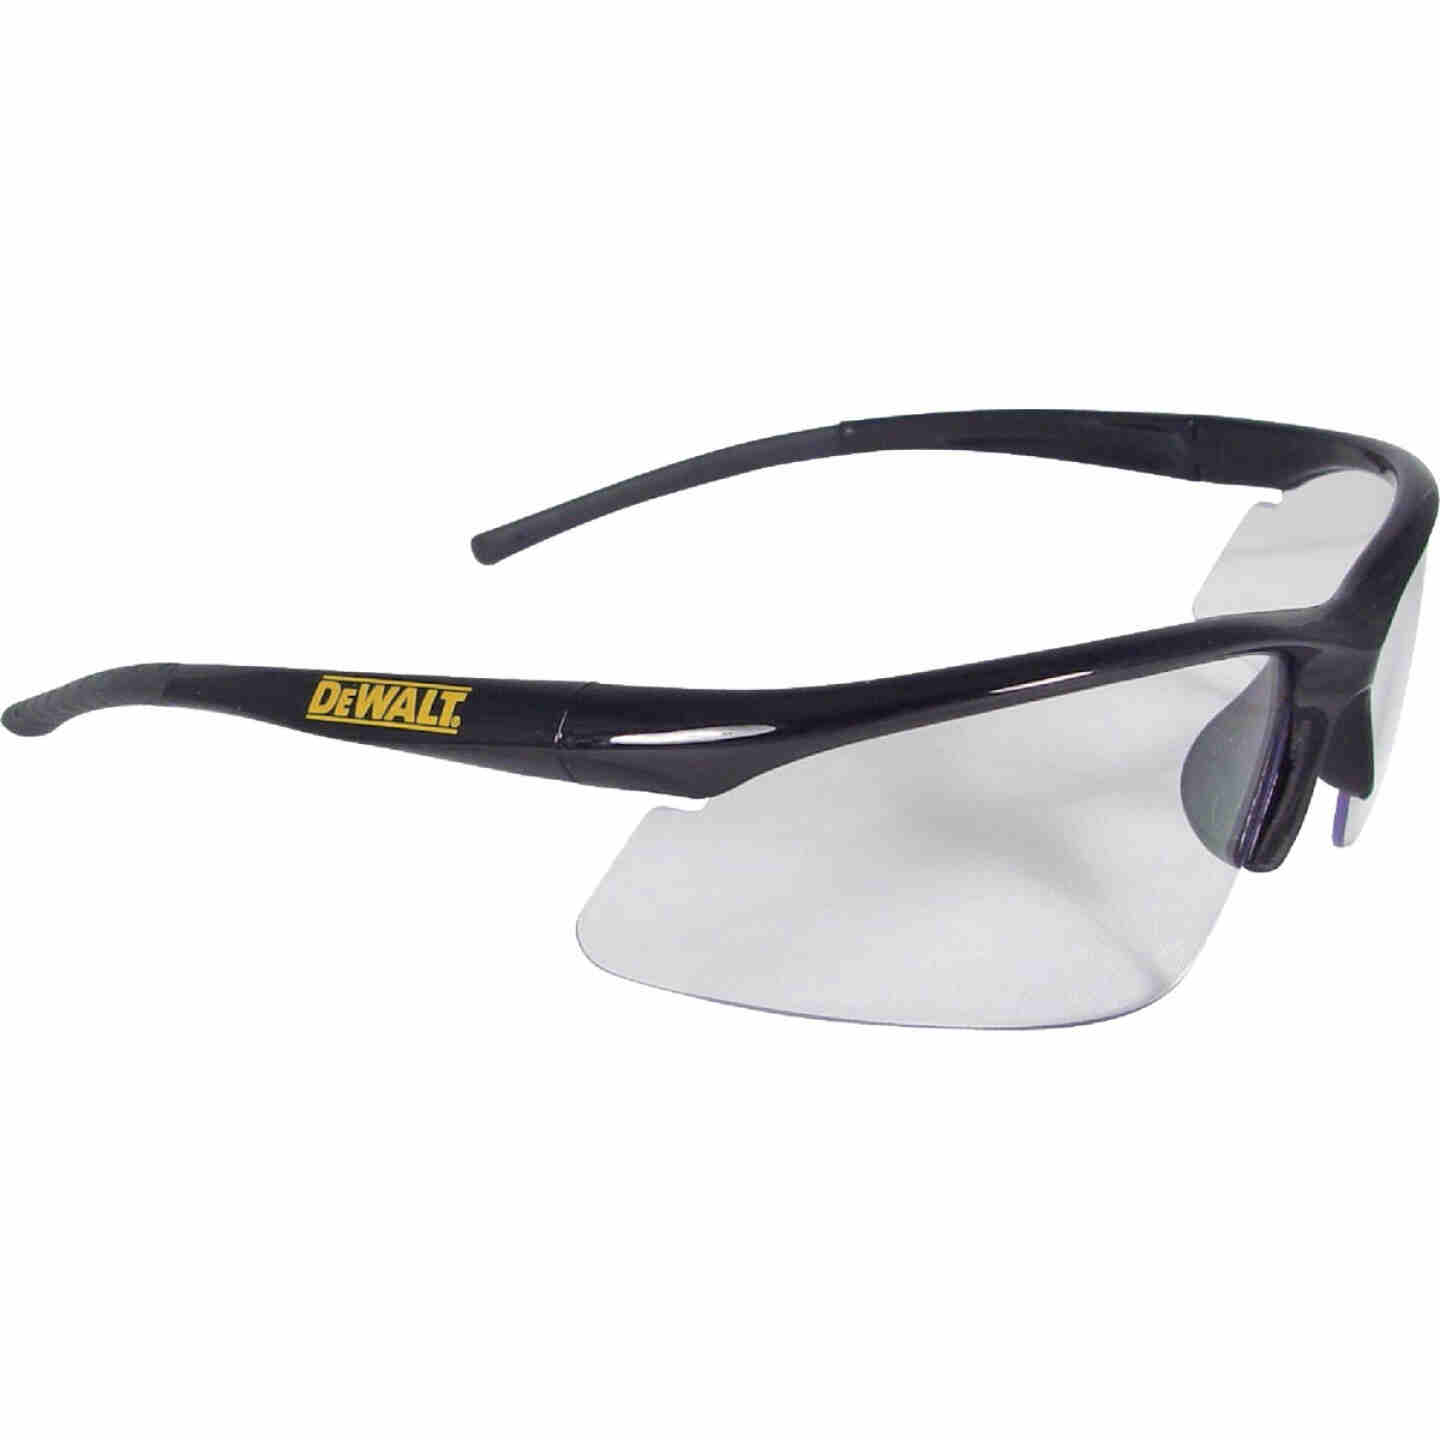 DeWalt Radius Black/Yellow Frame Safety Glasses with Clear Lenses Image 1